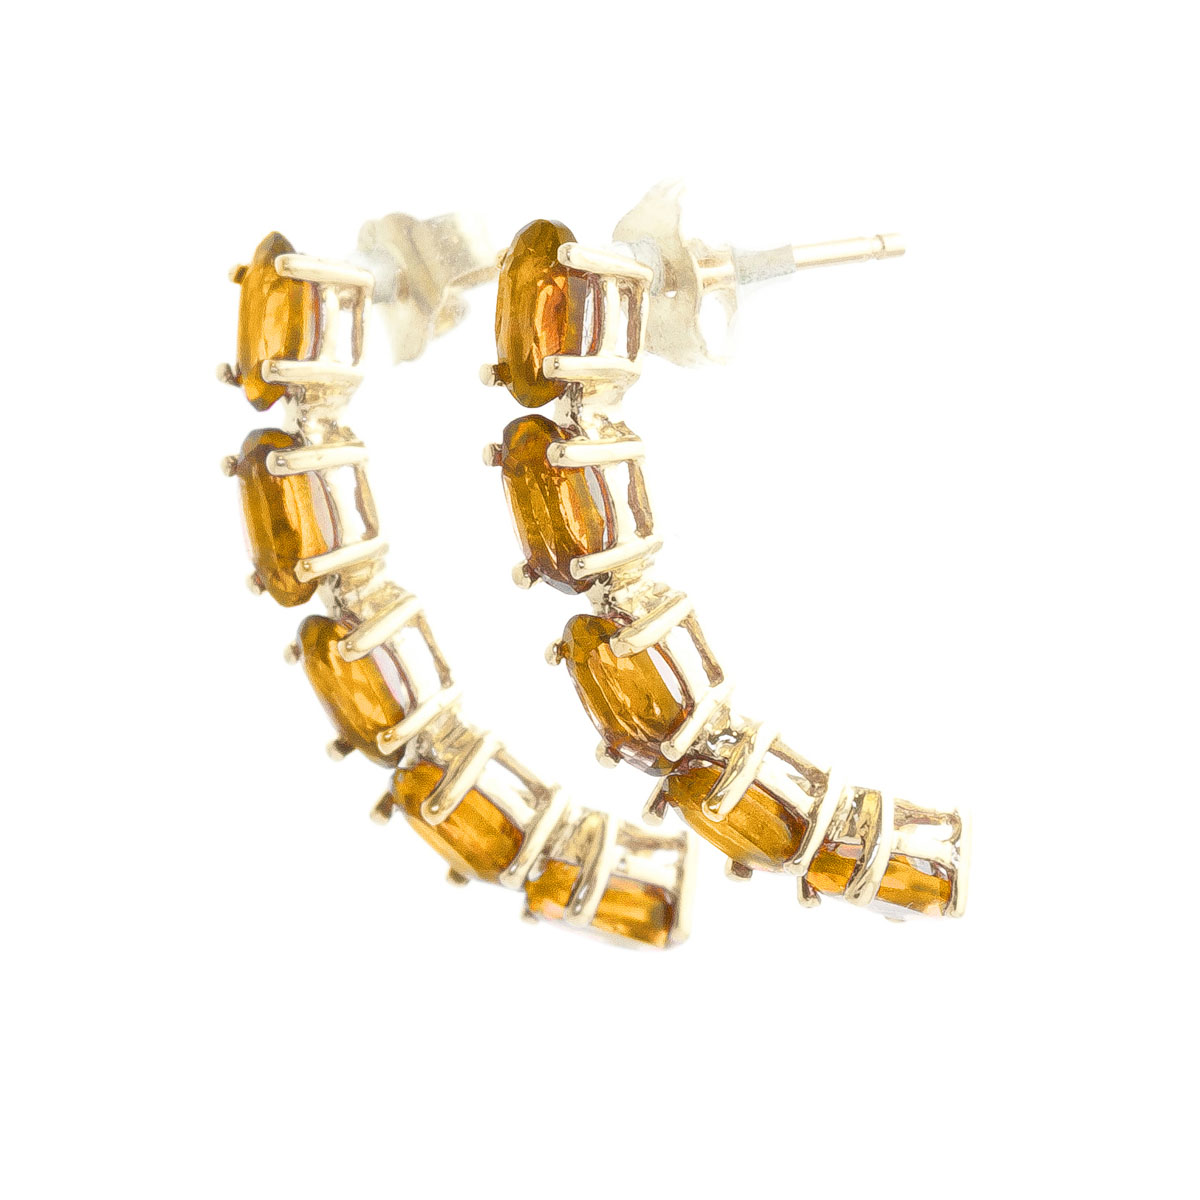 Citrine Linear Stud Earrings 2.5 ctw in 9ct Gold